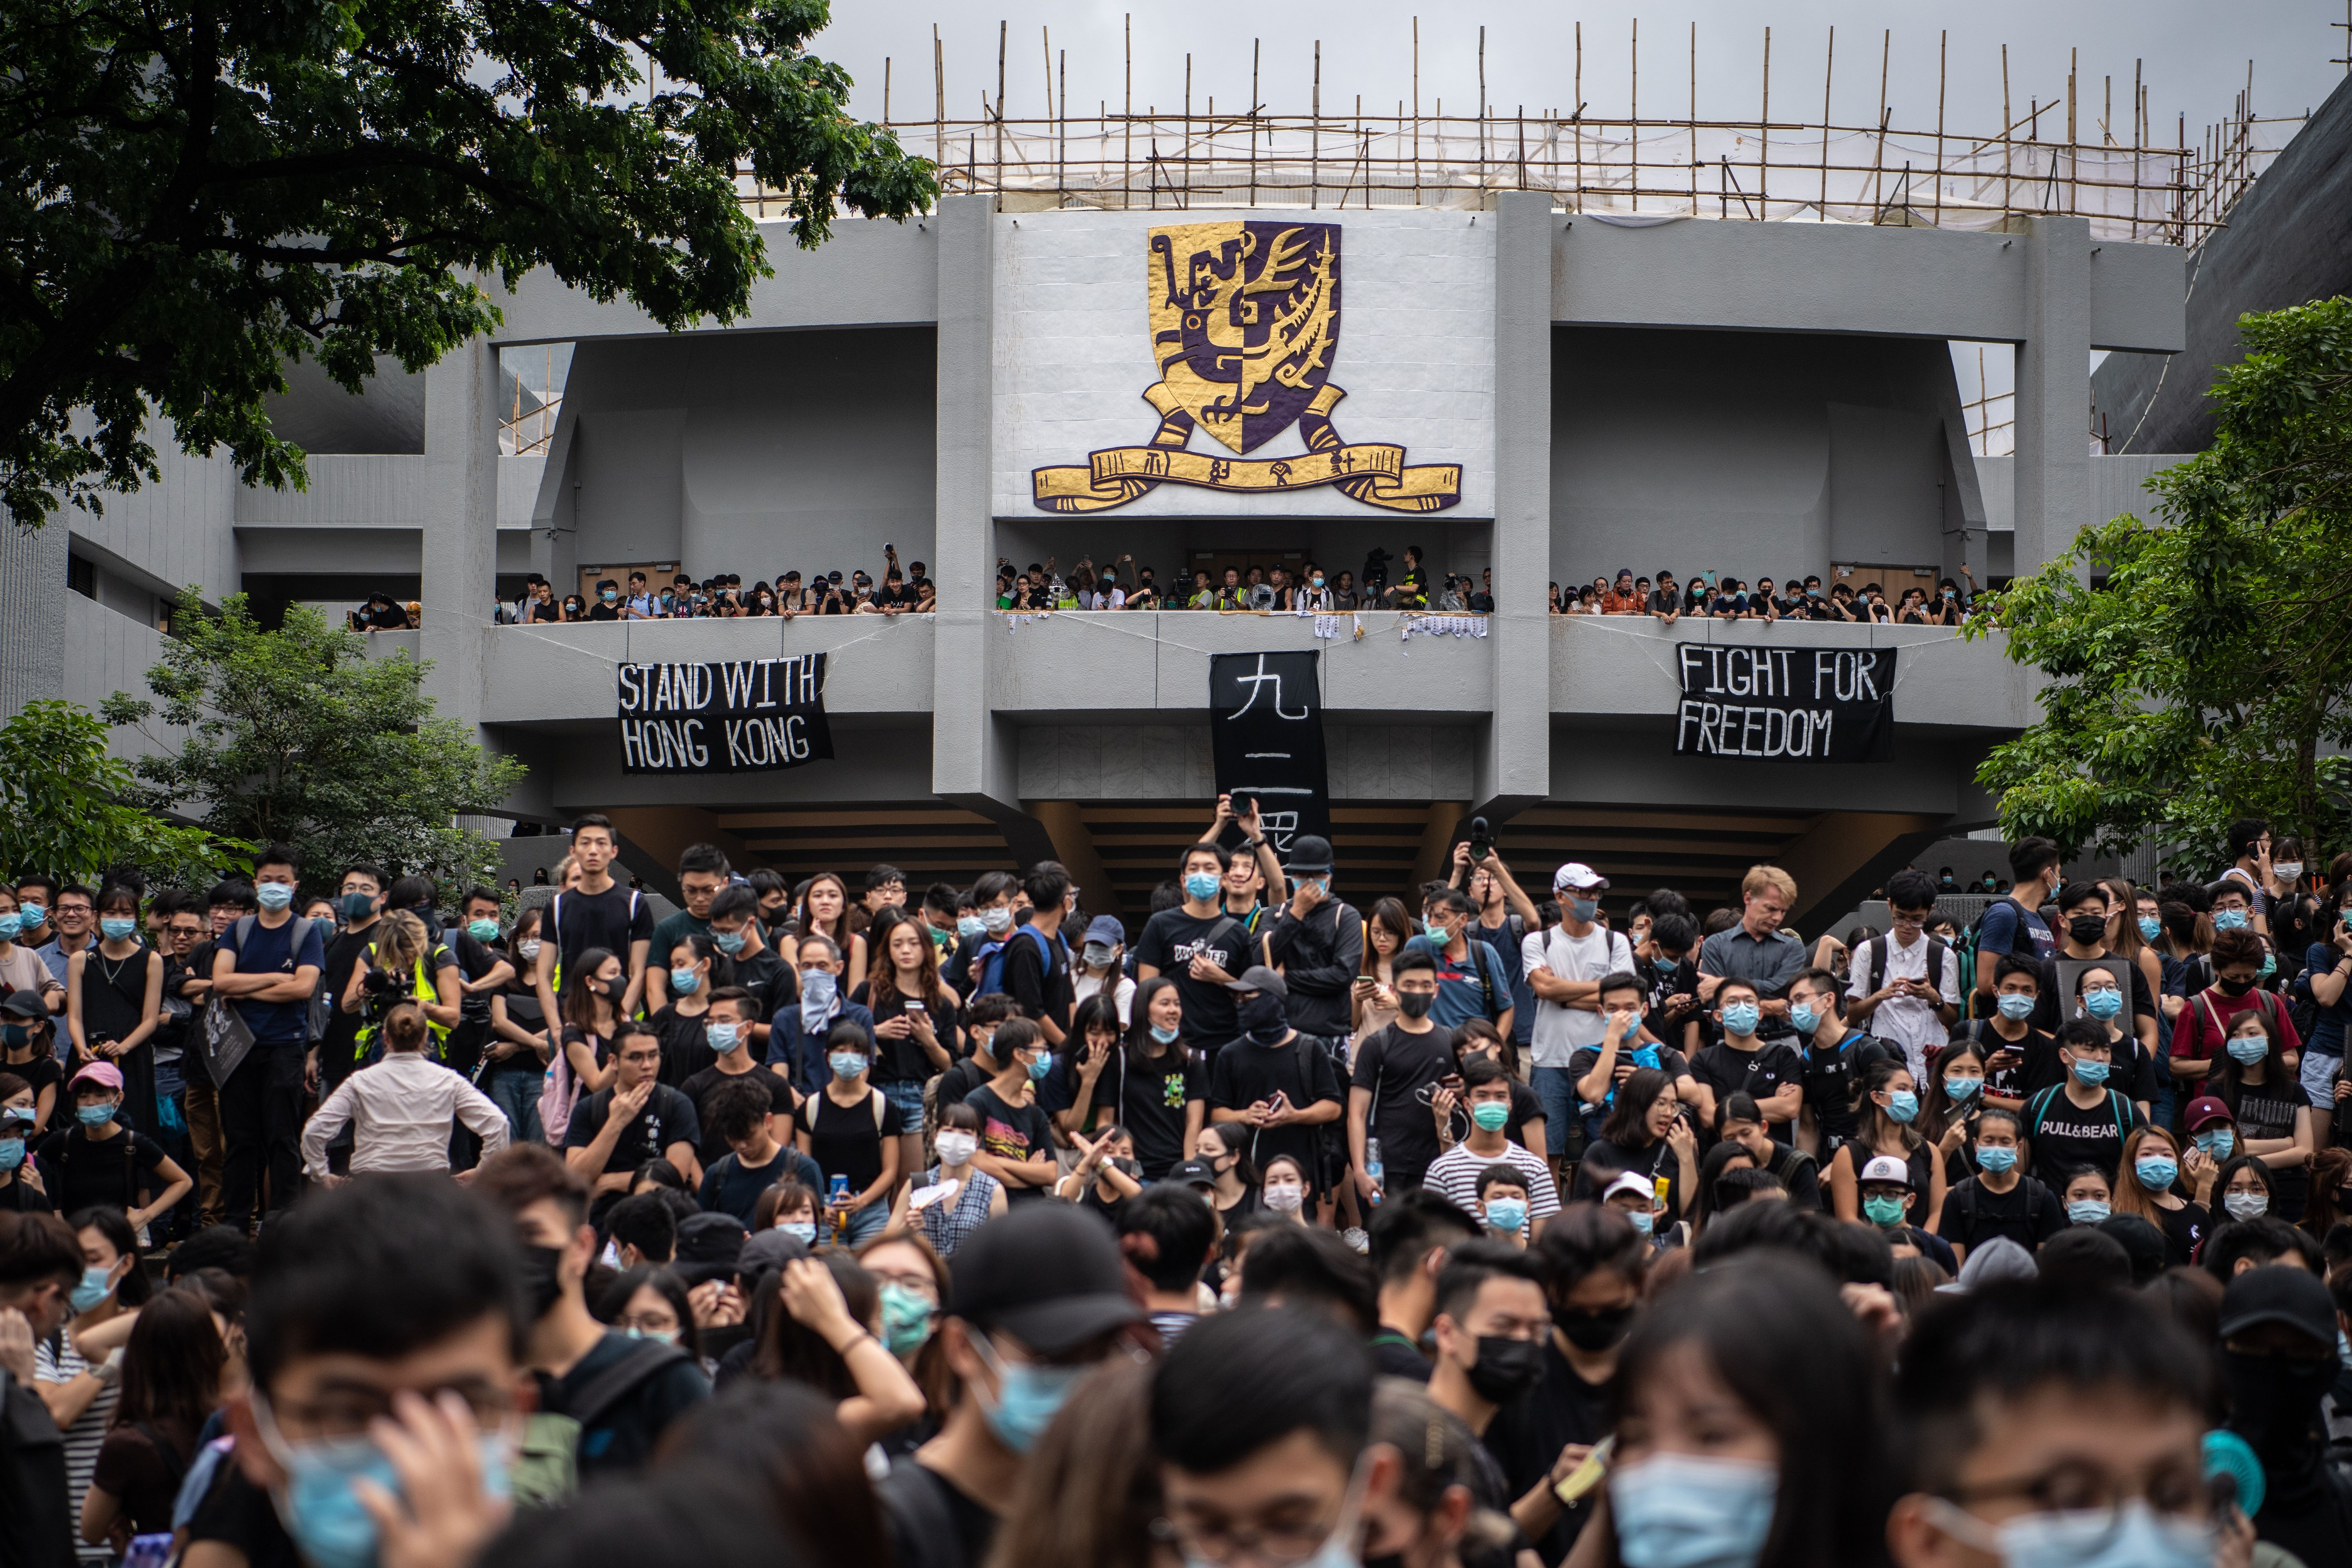 With threats and propaganda, China tries to silence support for Hong Kong protests